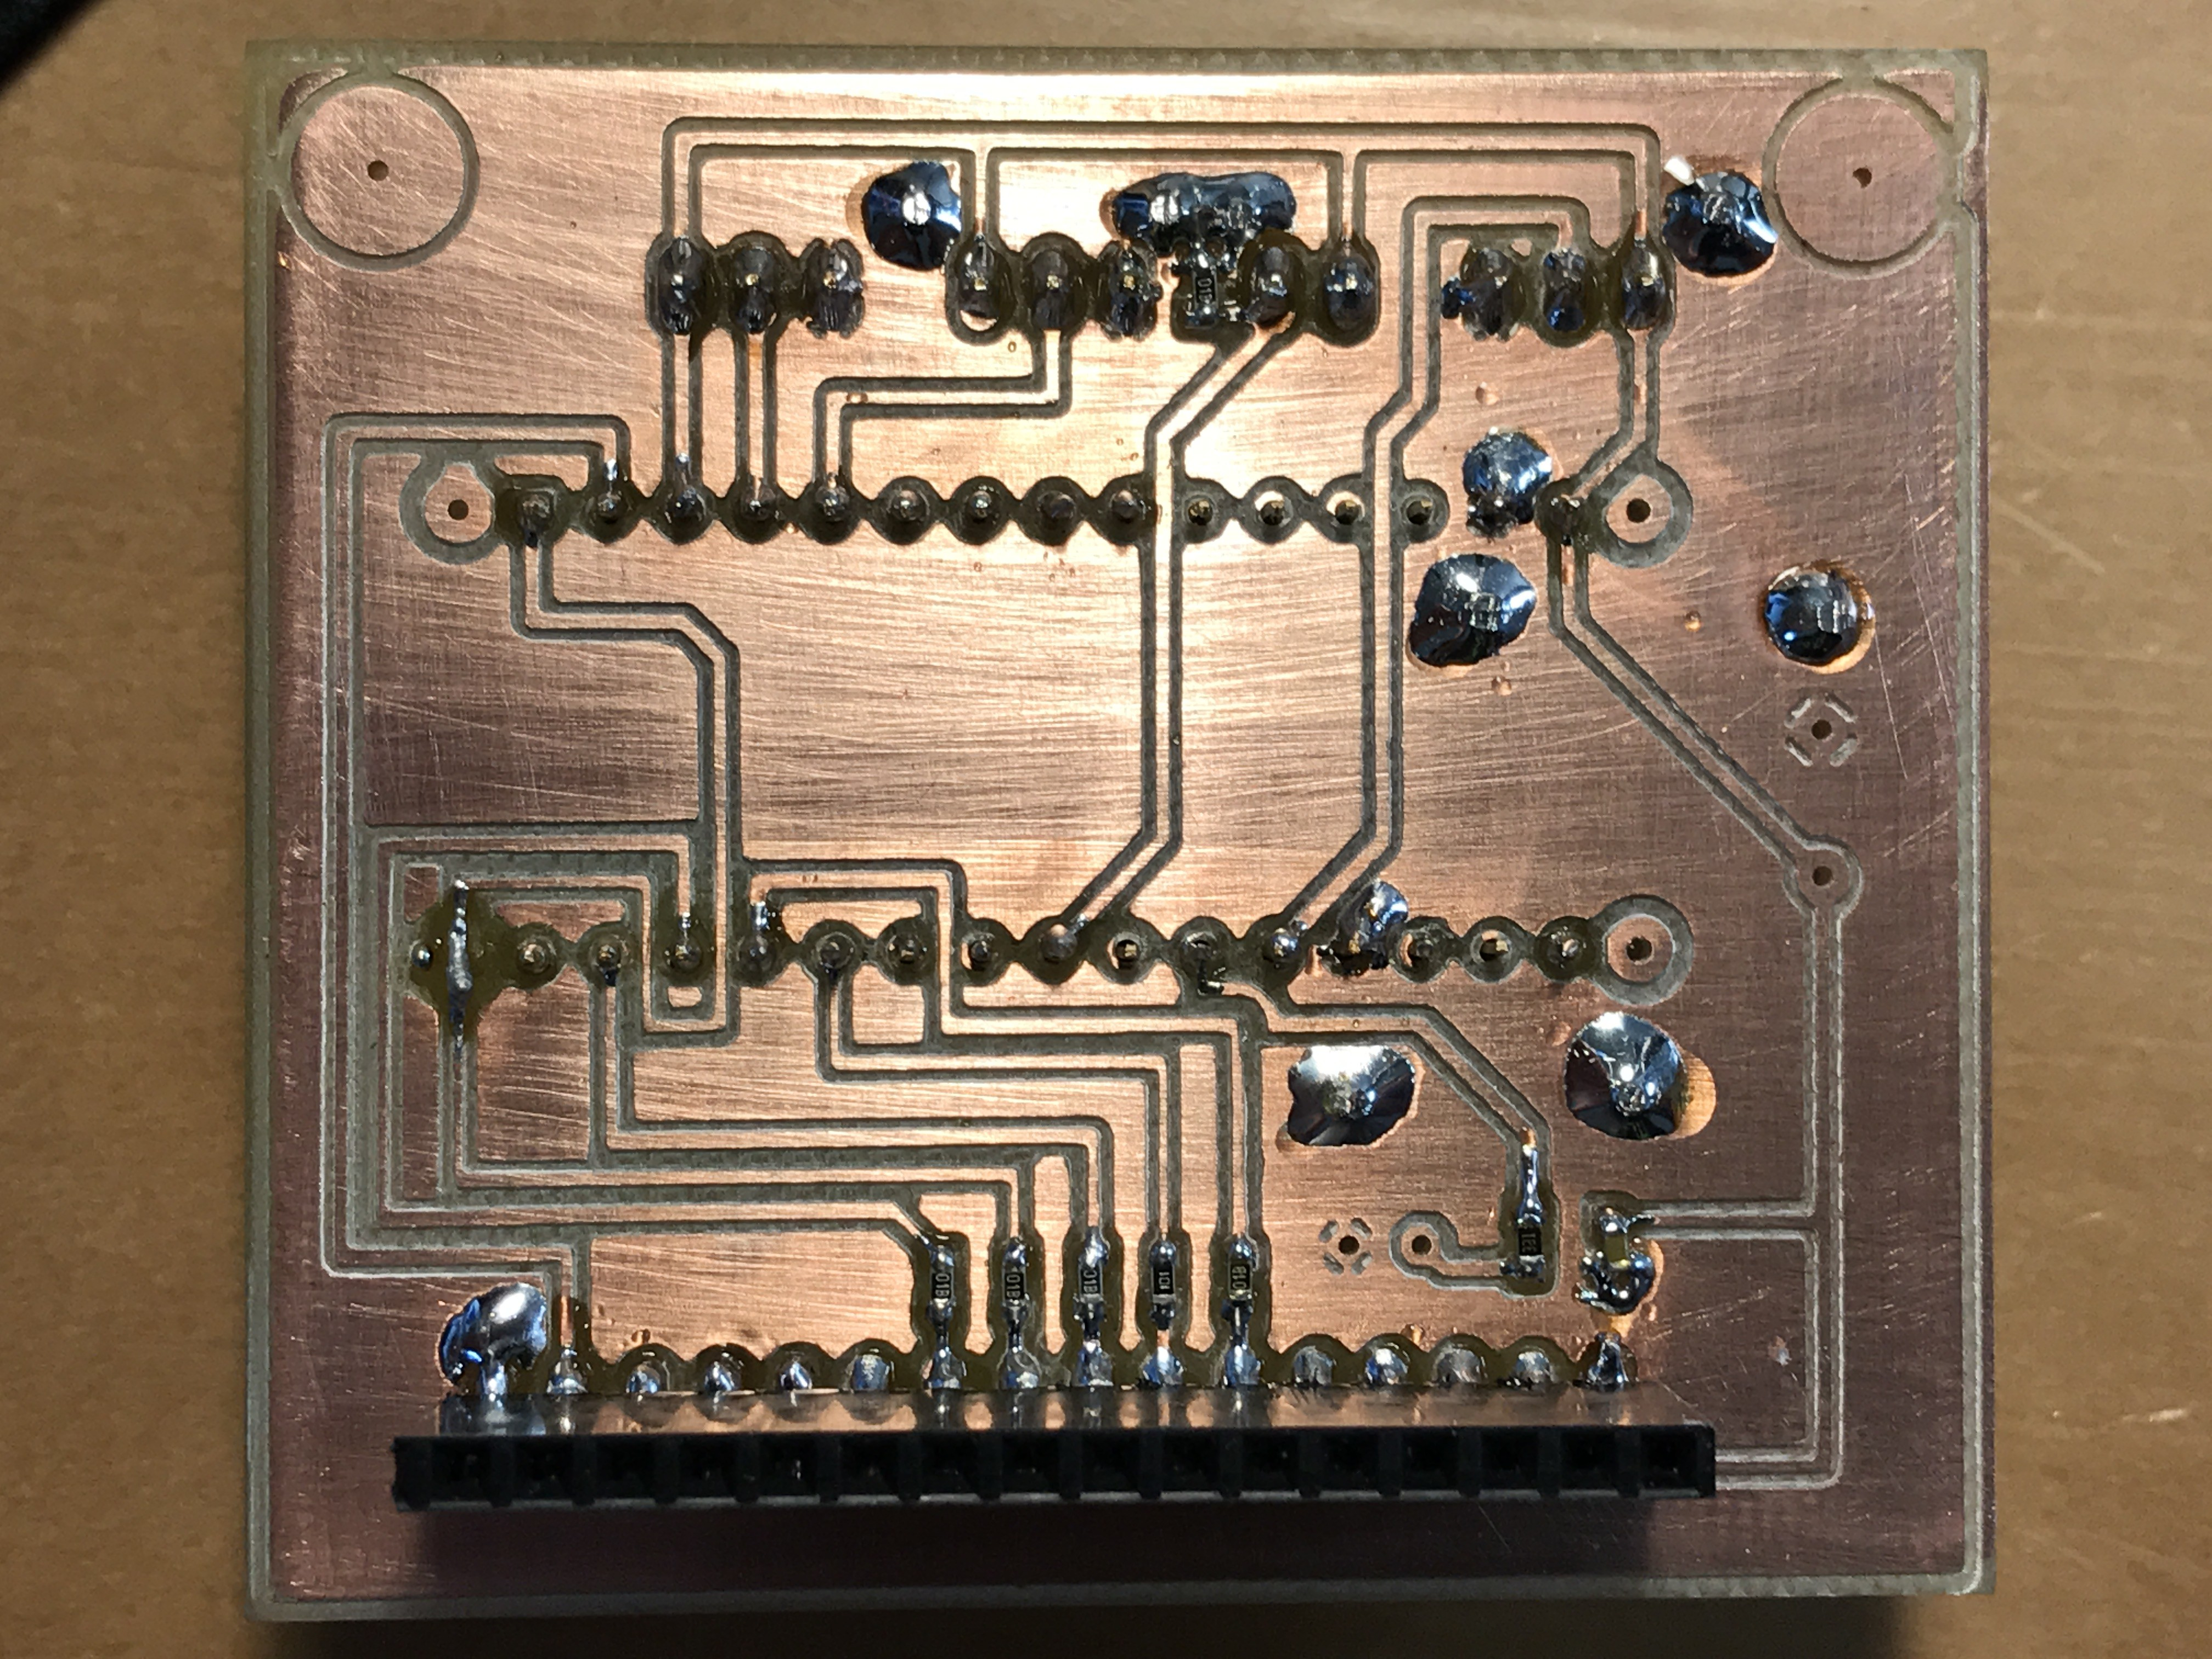 Diy Spot Welder For Creating Battery Packs Welding Wiring Diagram I Love My Pcb Mill And Im Very Happy With The Results Even Though Need To Make Restrings Vias Pads Significantly Larger From Now On